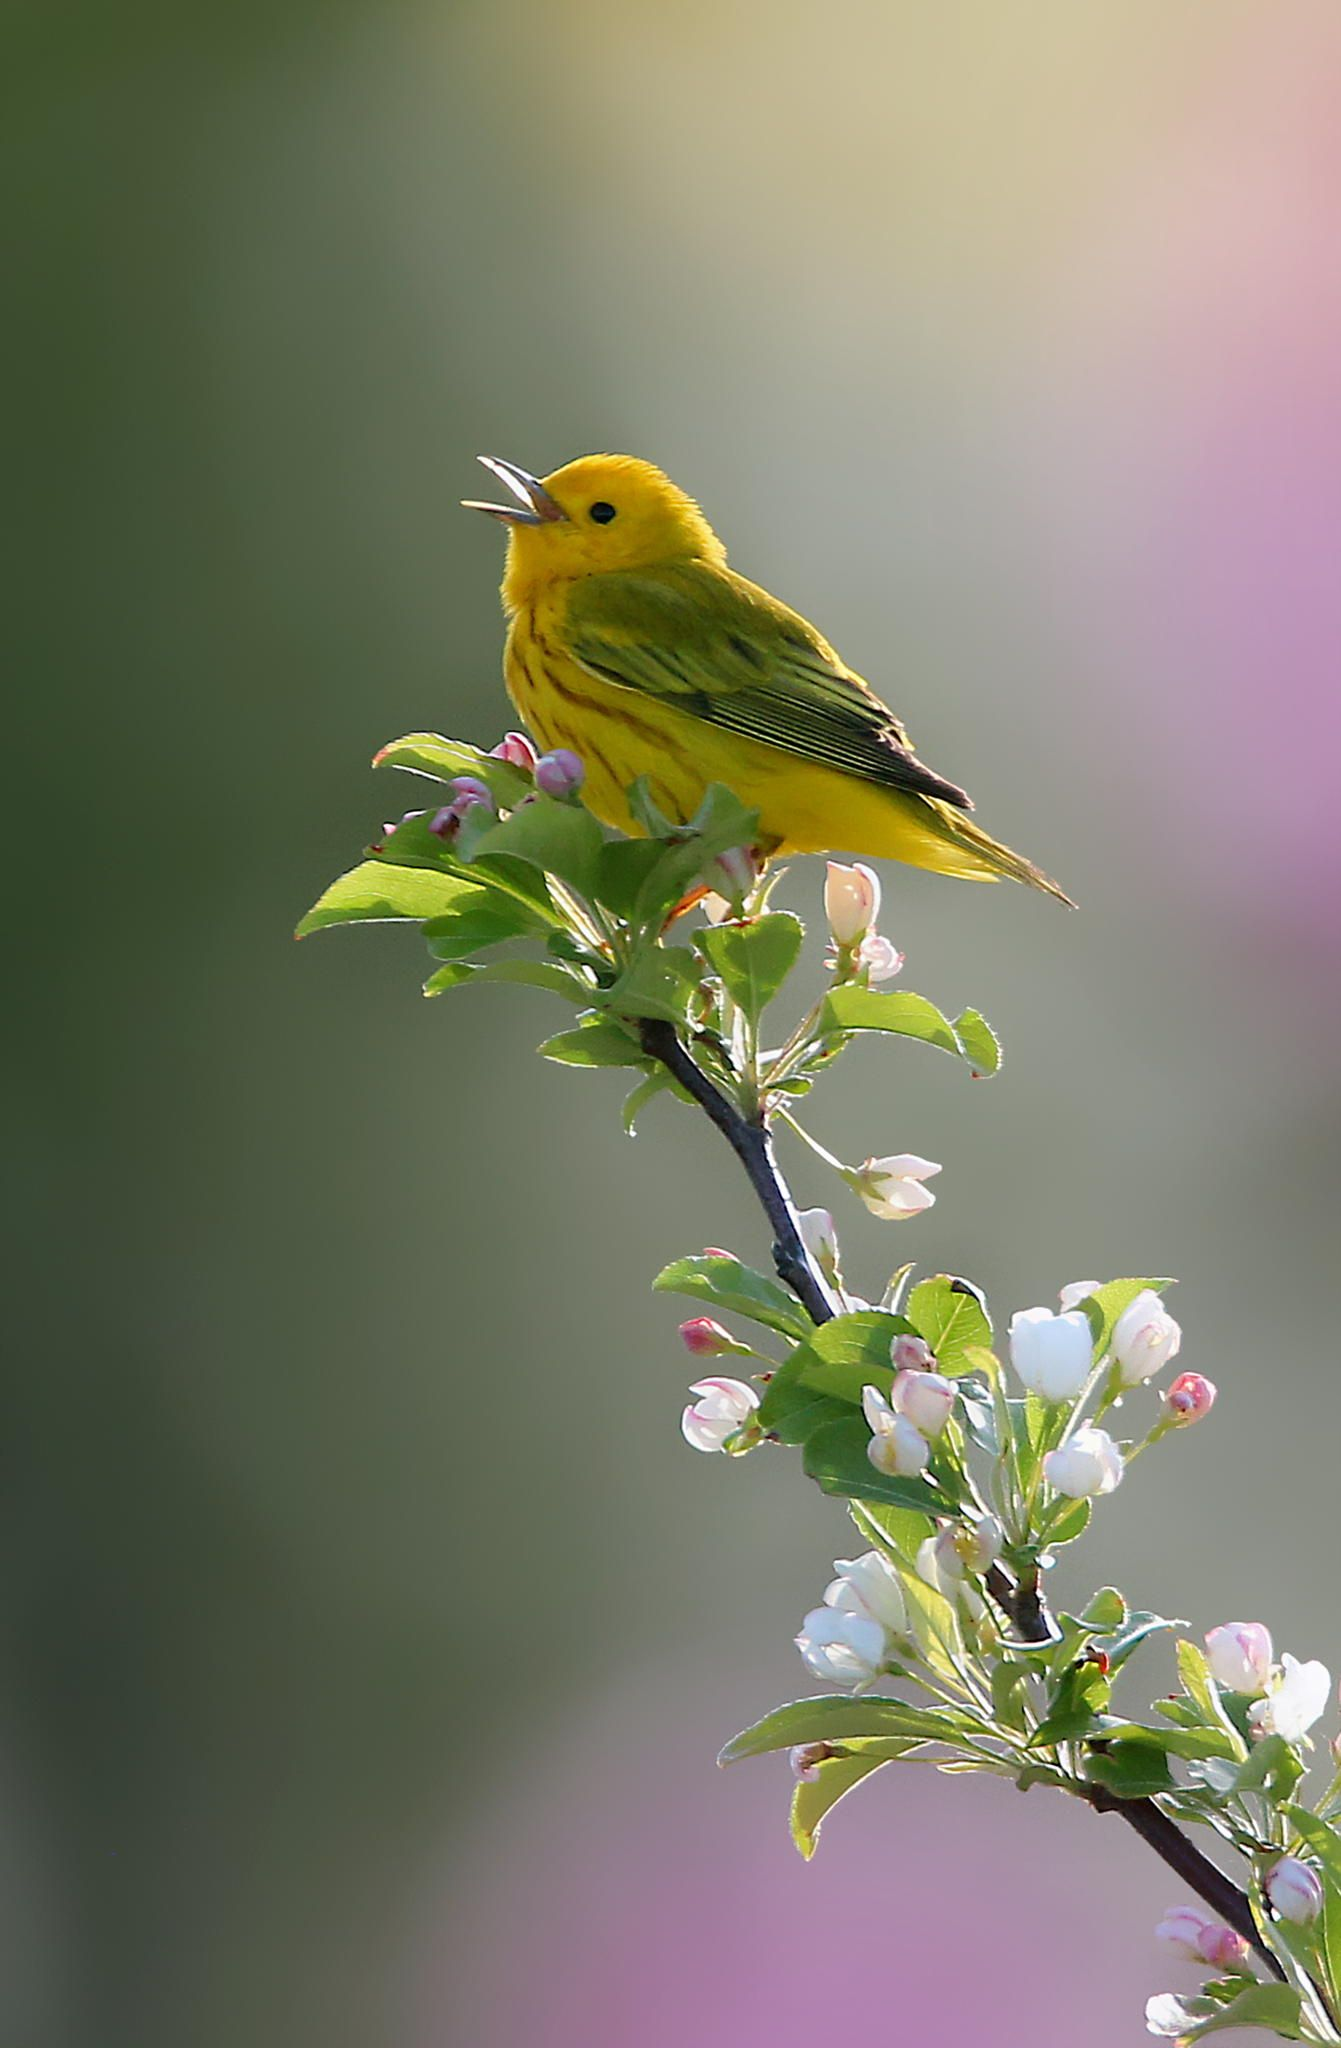 Yellow Wabler on flowered limb singing with a happy heart